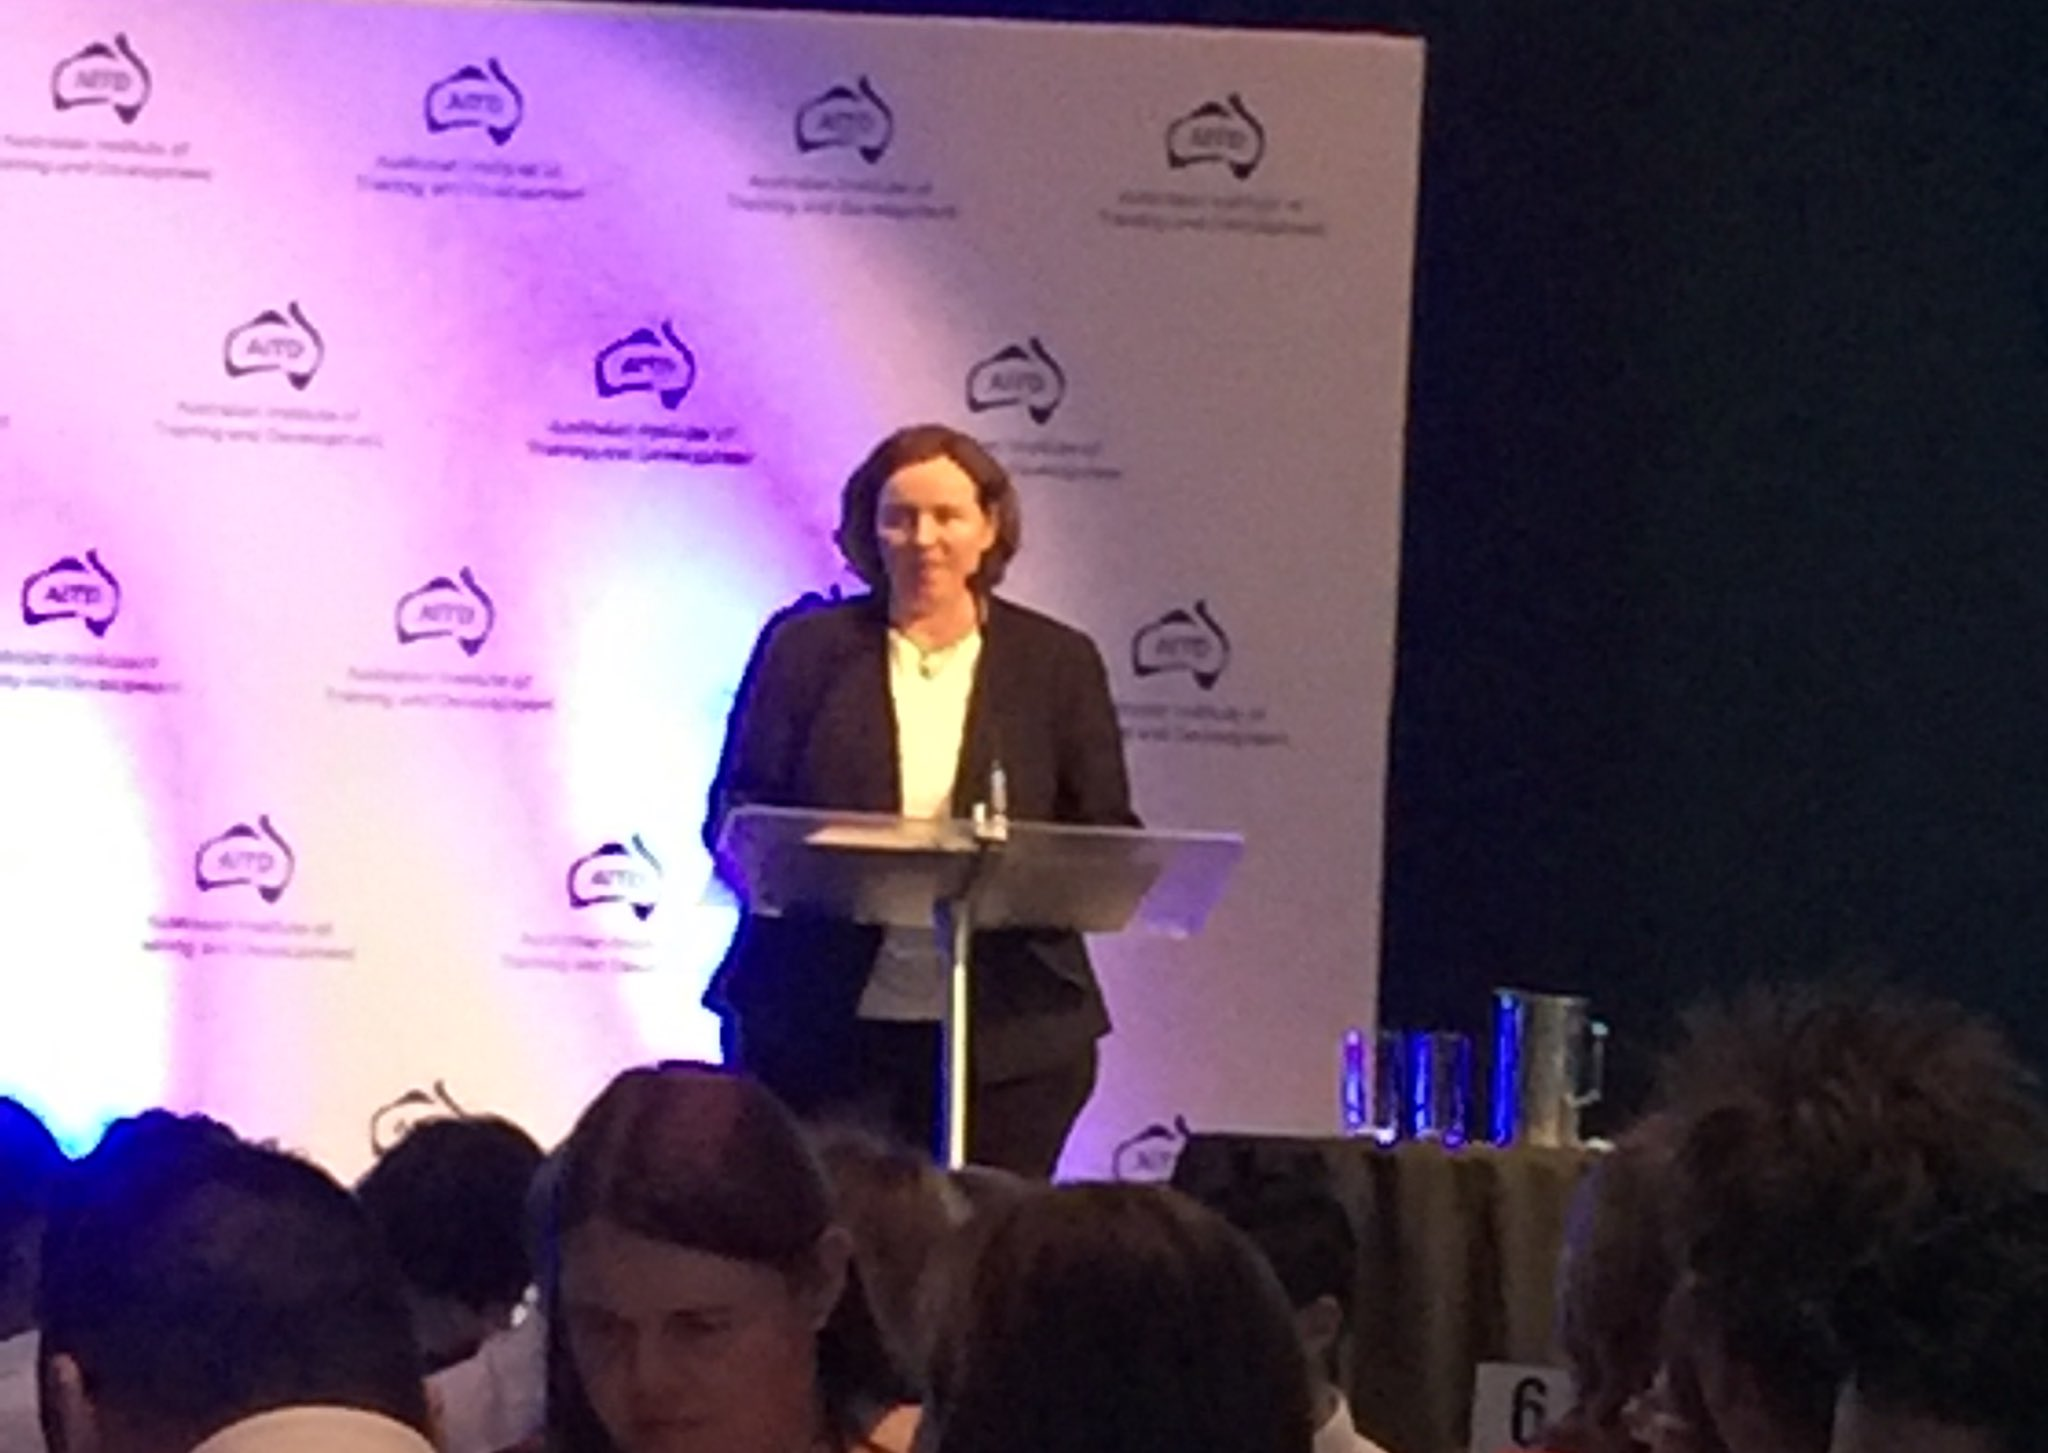 CEO of @aitd1 Elizabeth Robinson opening remarks and welcome to #AITDawards https://t.co/cRRVlIqoQT